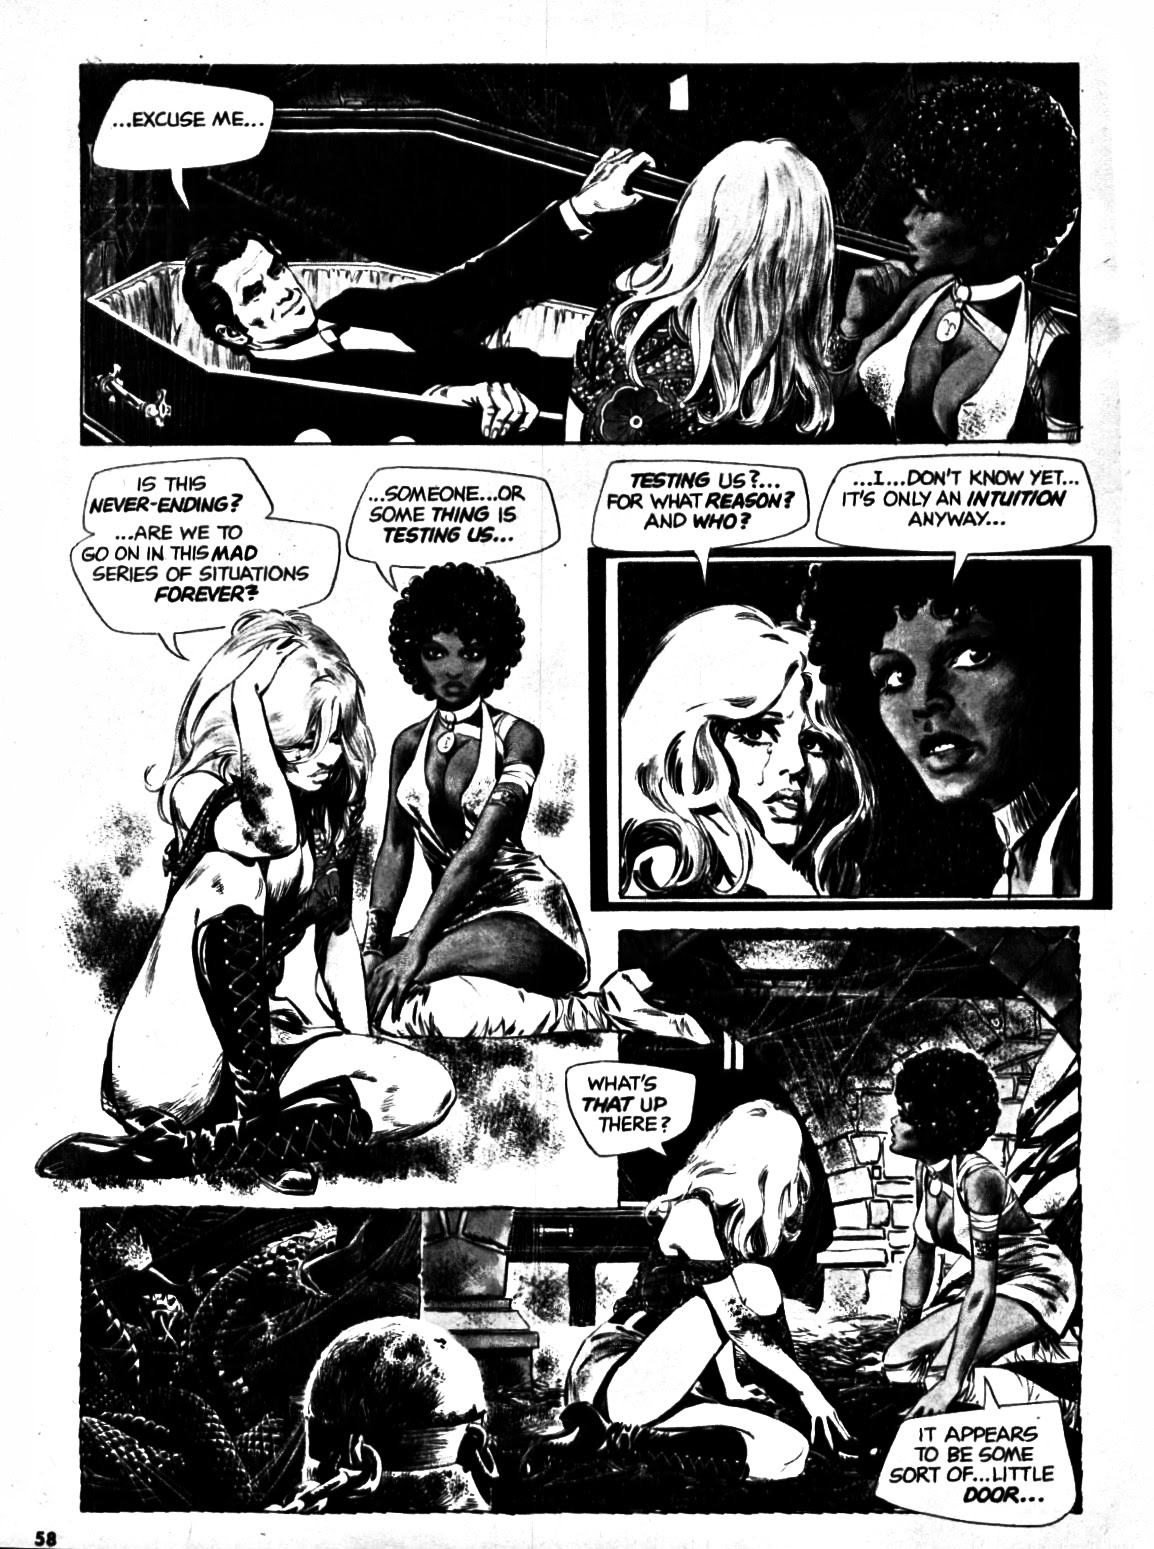 Scream (1973) issue 7 - Page 57